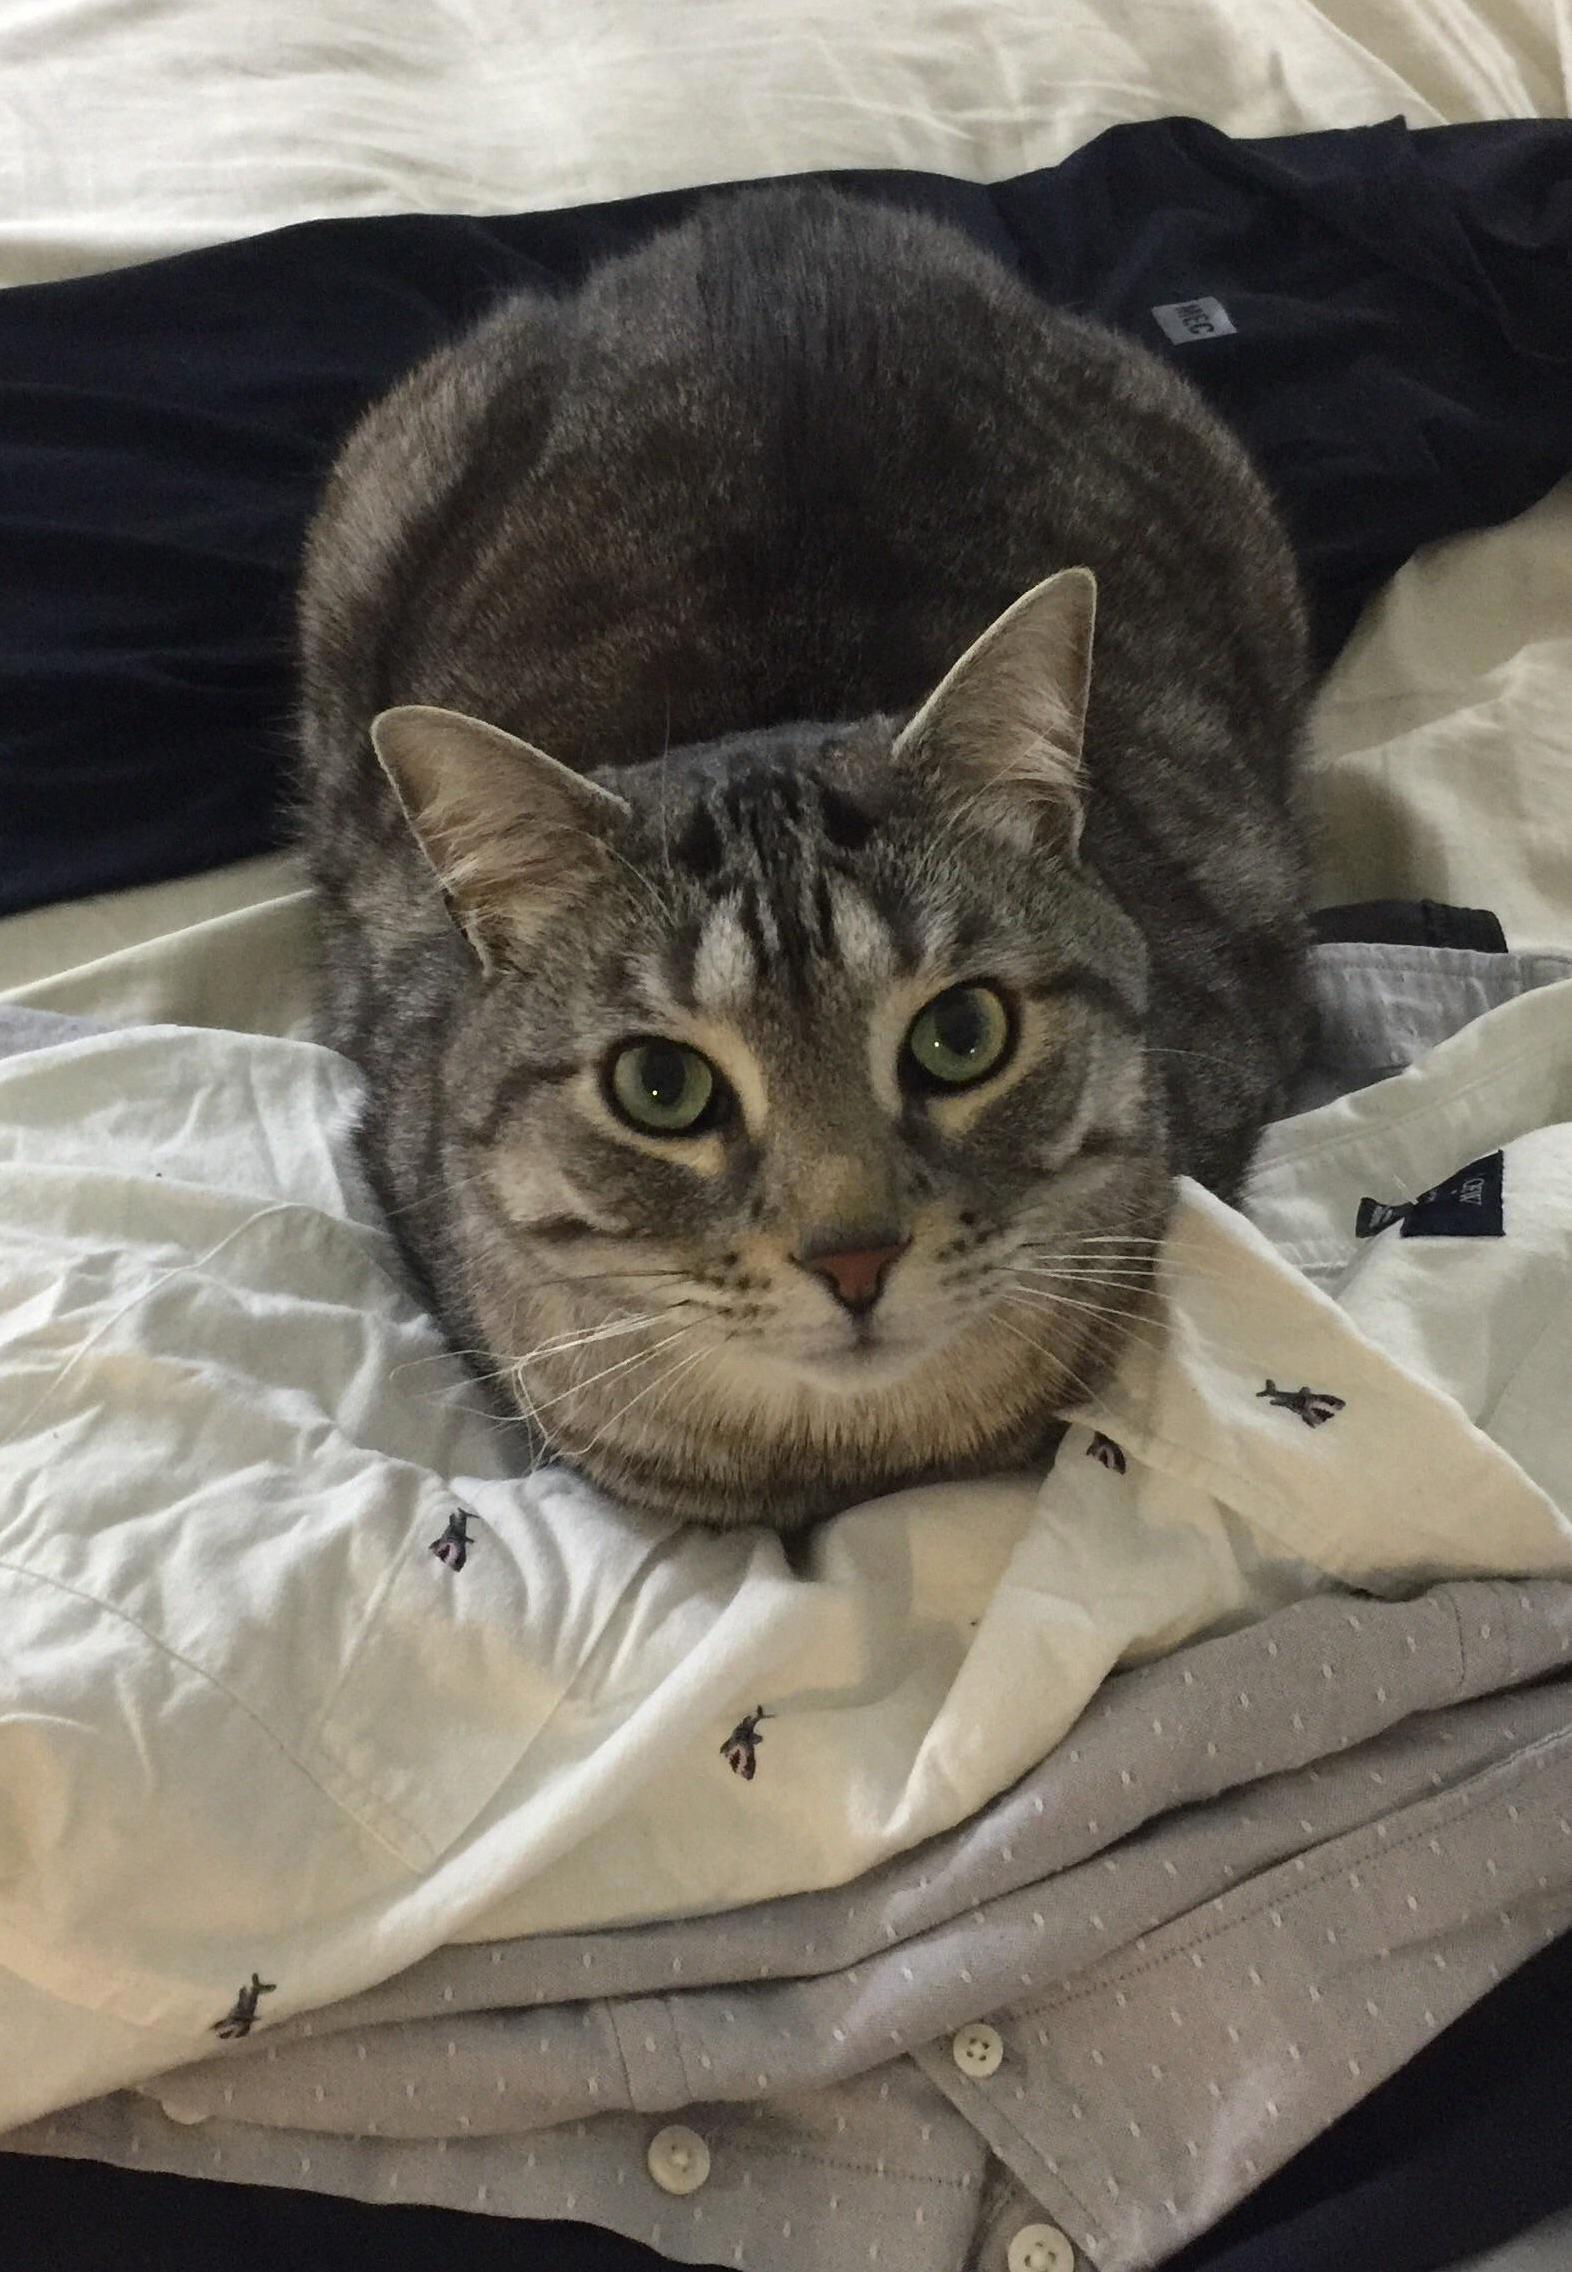 Loaf on clothes.